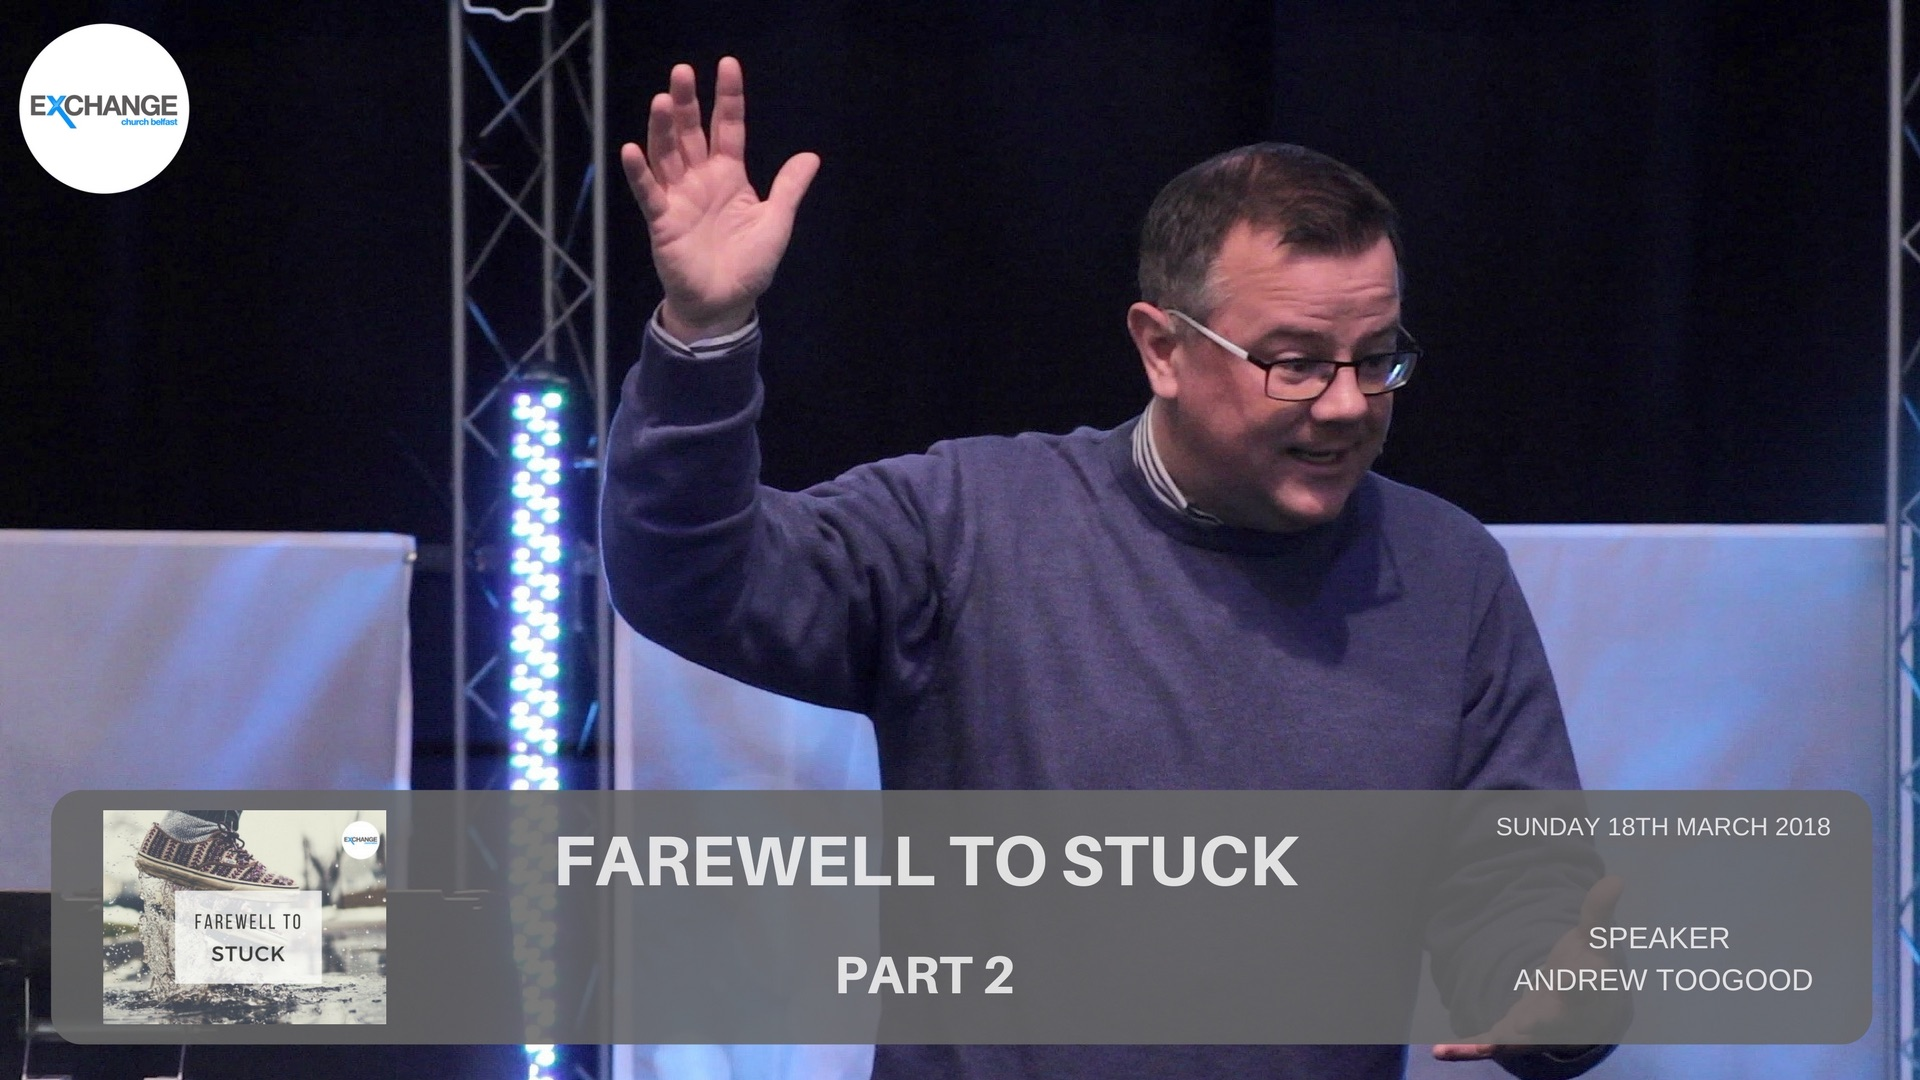 Farewell to Stuck - Part 2 - But they sin!